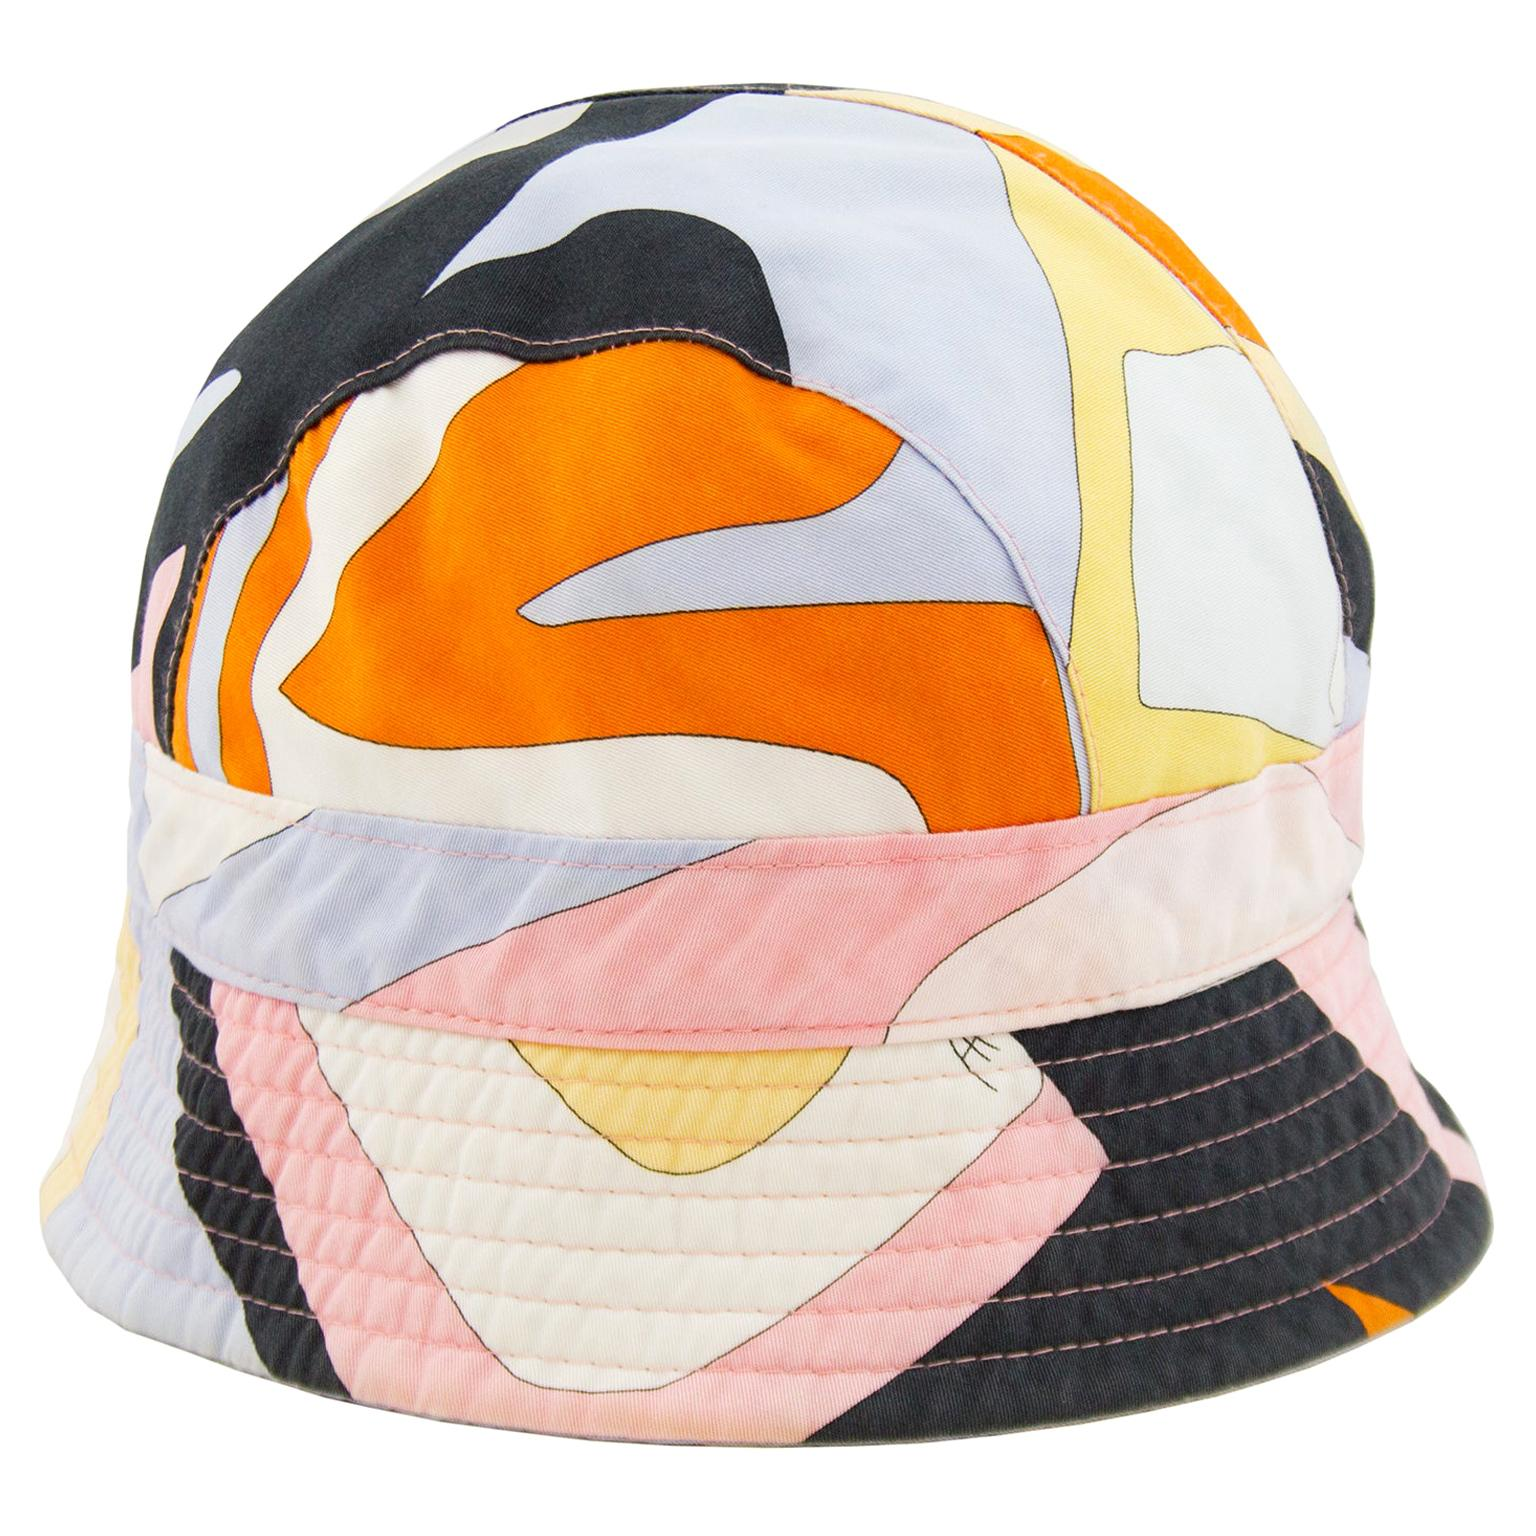 1990s Emilio Pucci Multi Colour Cotton Bucket Hat